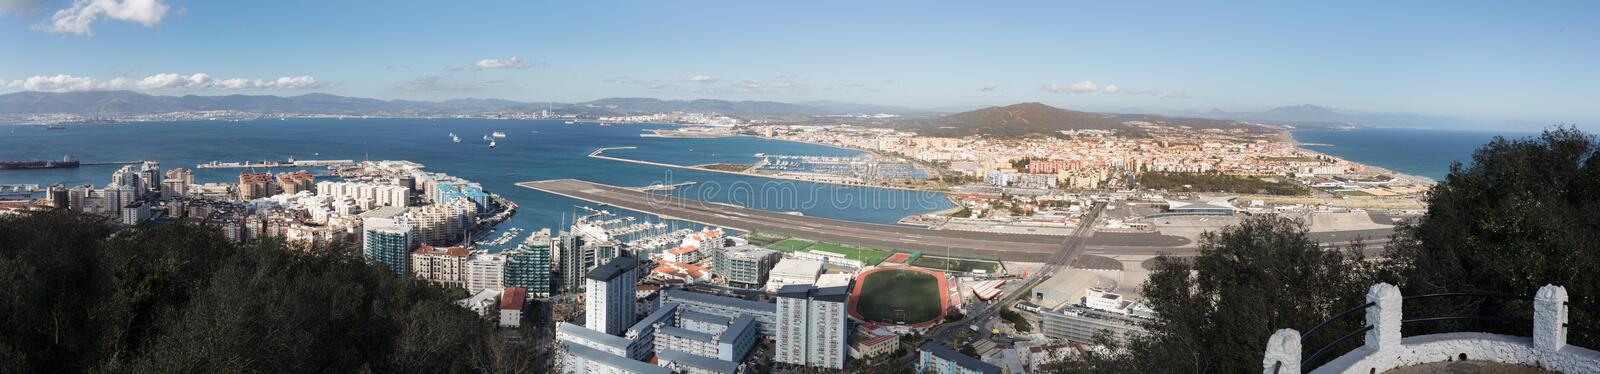 Gibraltar, points of interest in the British overseas area on the southern spit of the Iberian Peninsula, royalty free stock photography